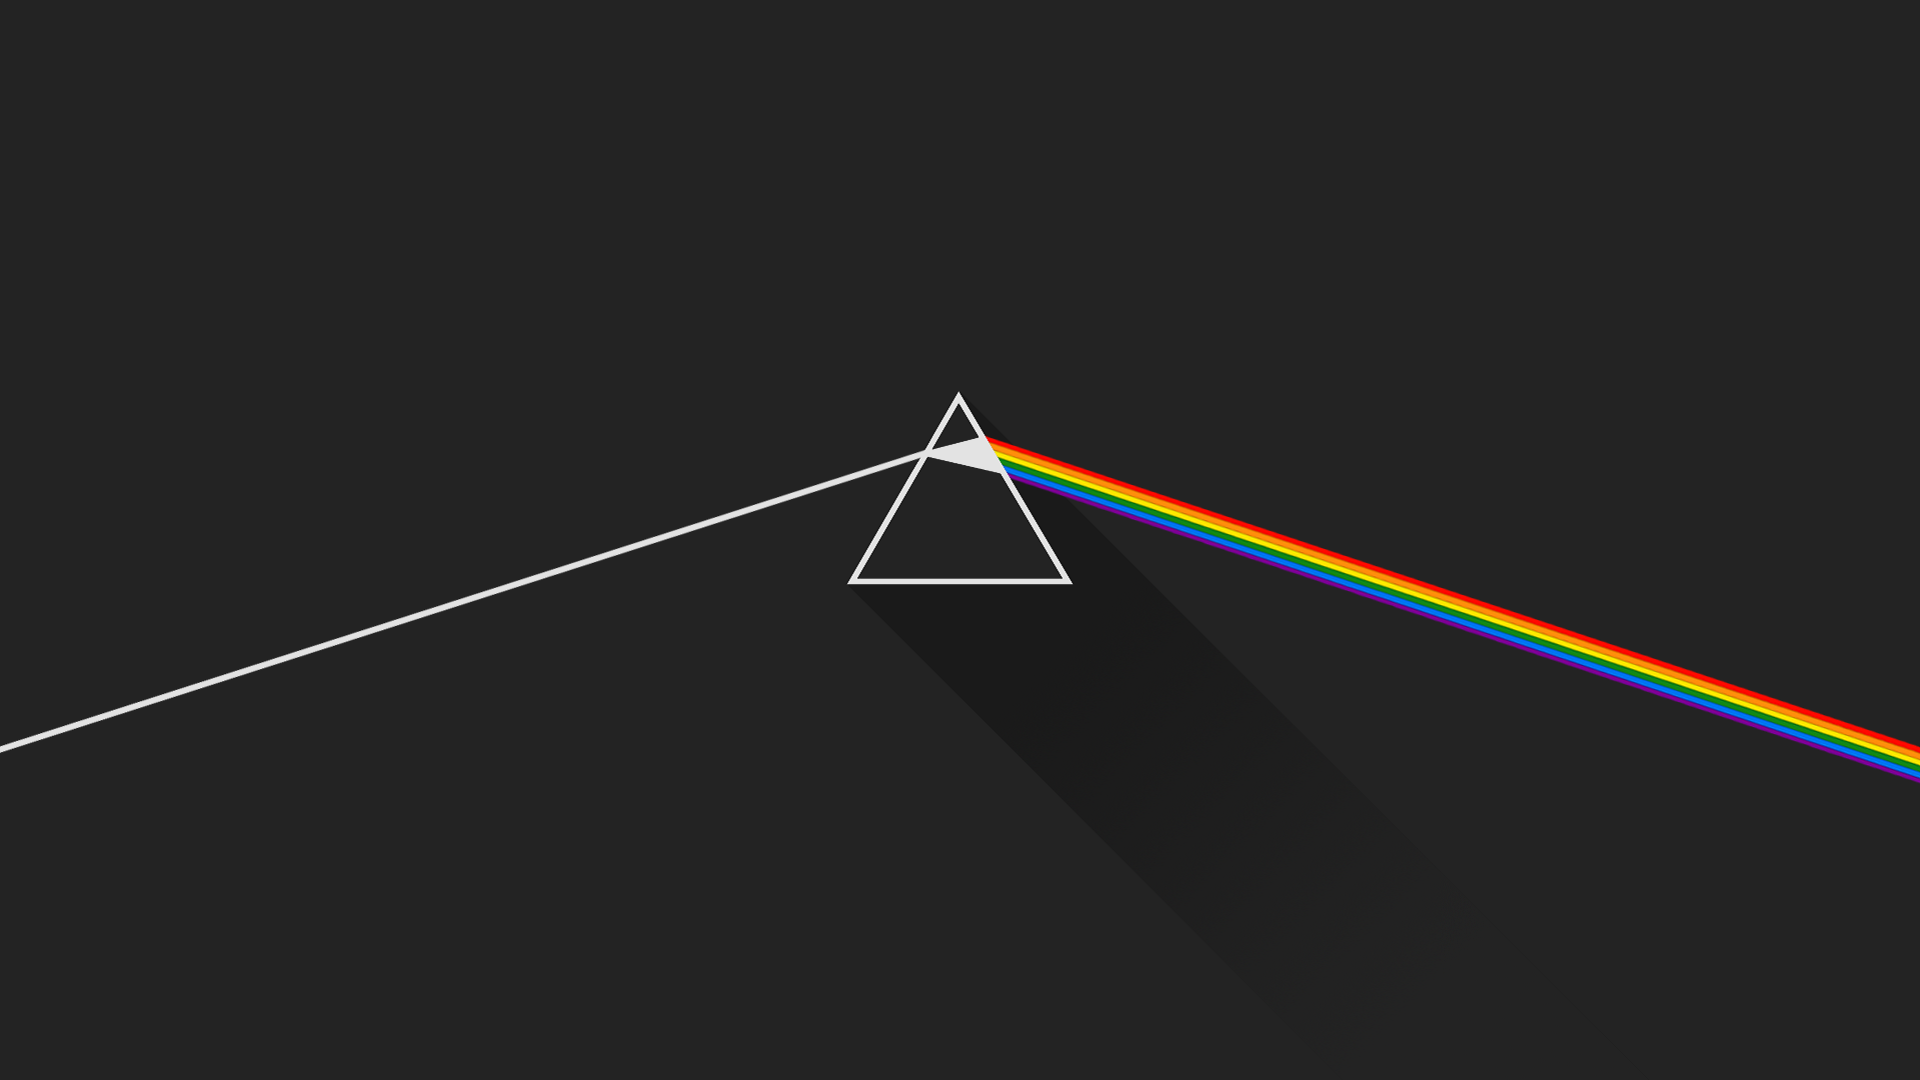 Download The Dark Side Of The Moon Wallpaper Gallery